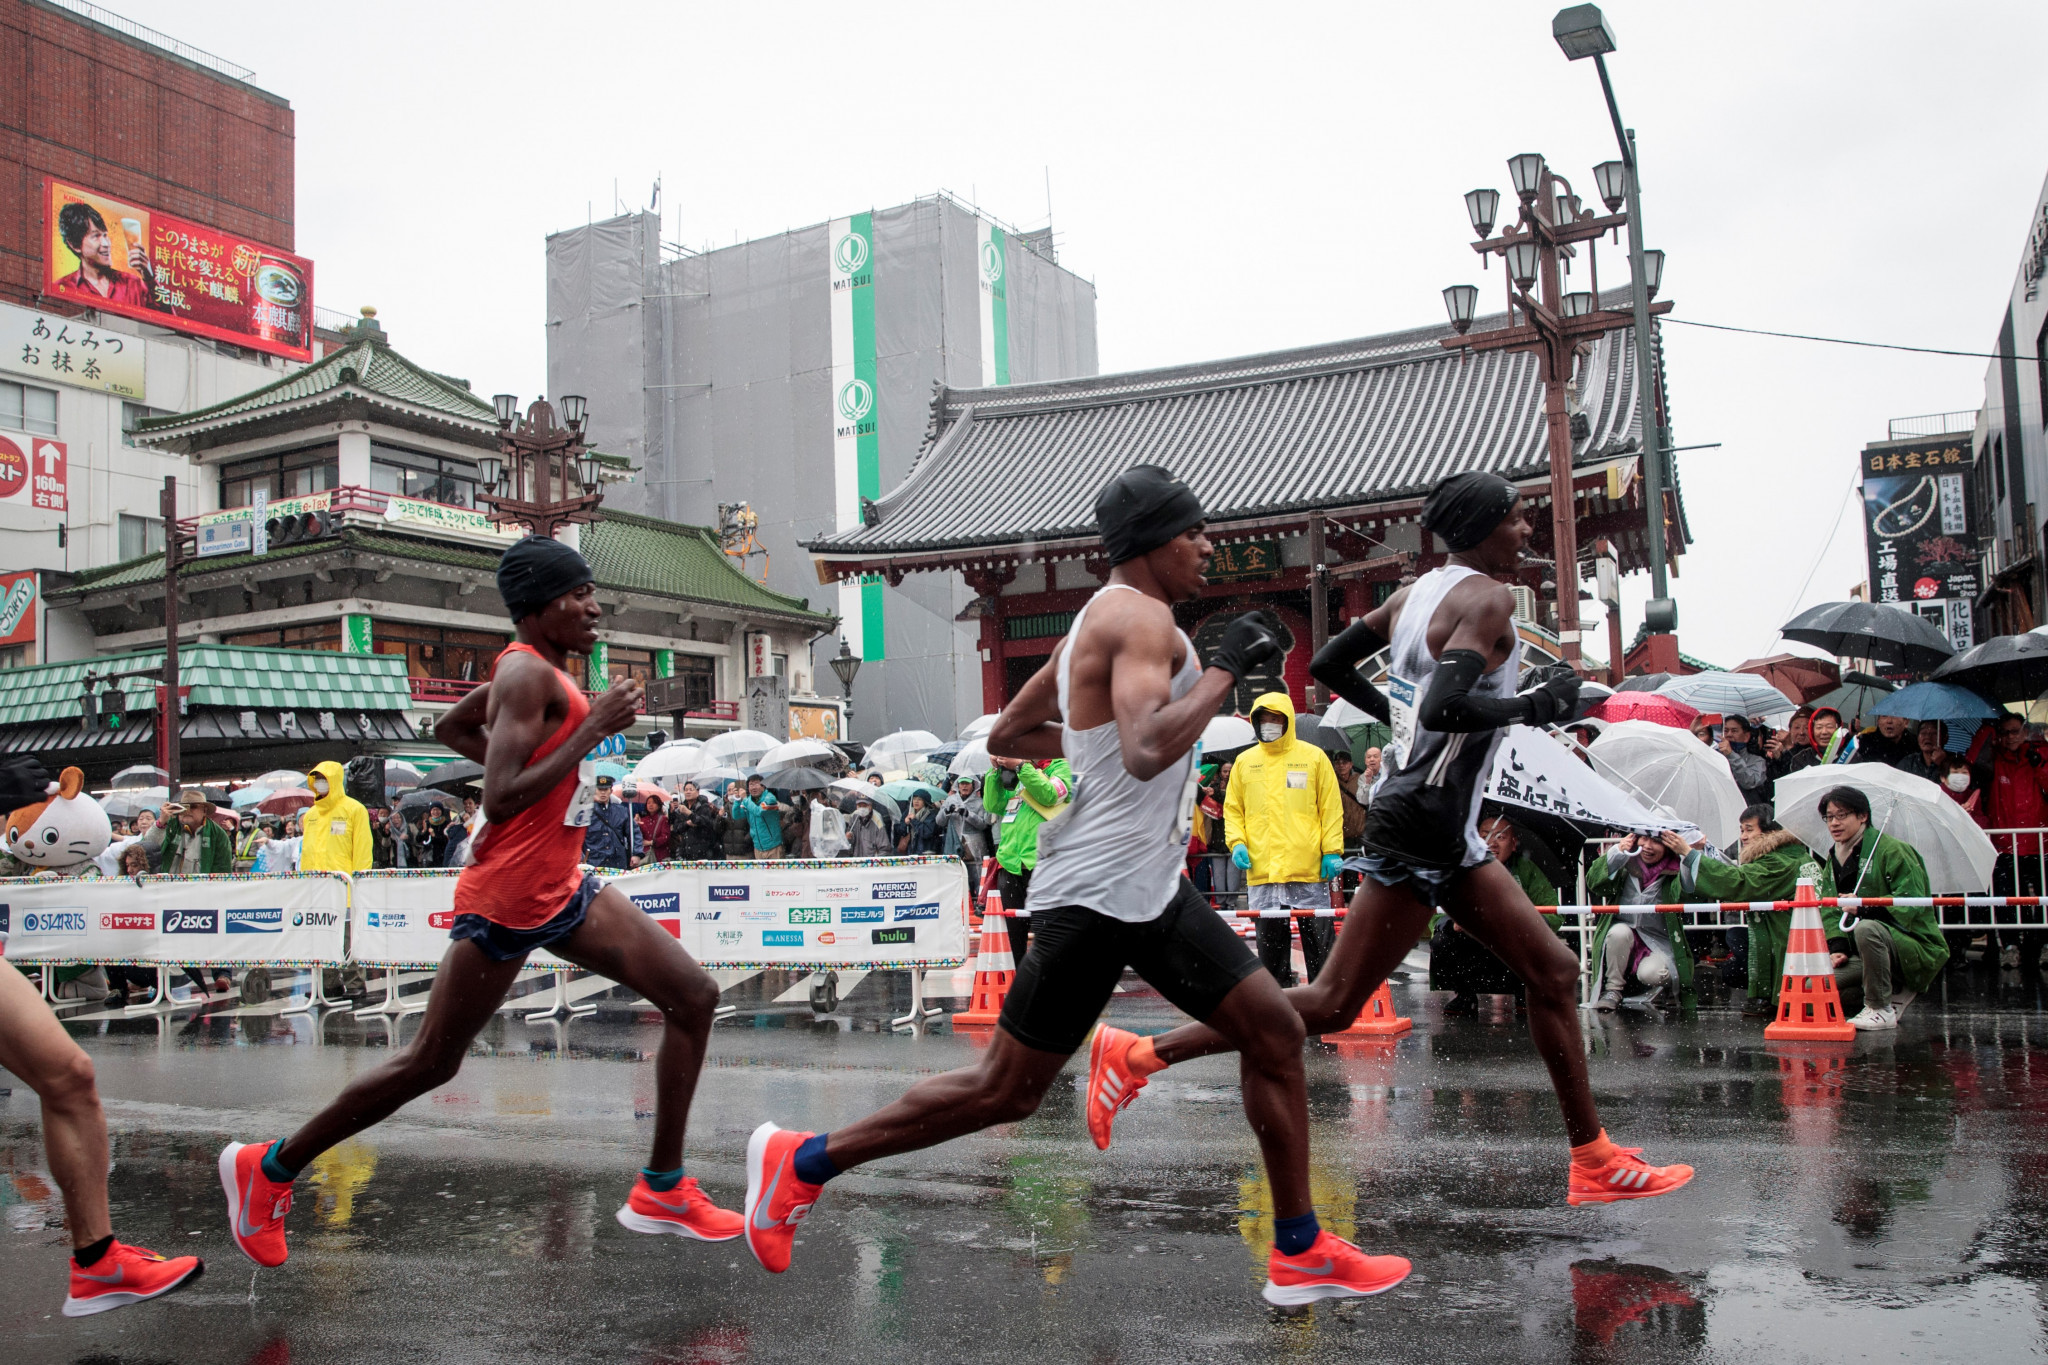 The Tokyo Marathon has been held every year since 2007 ©Getty Images